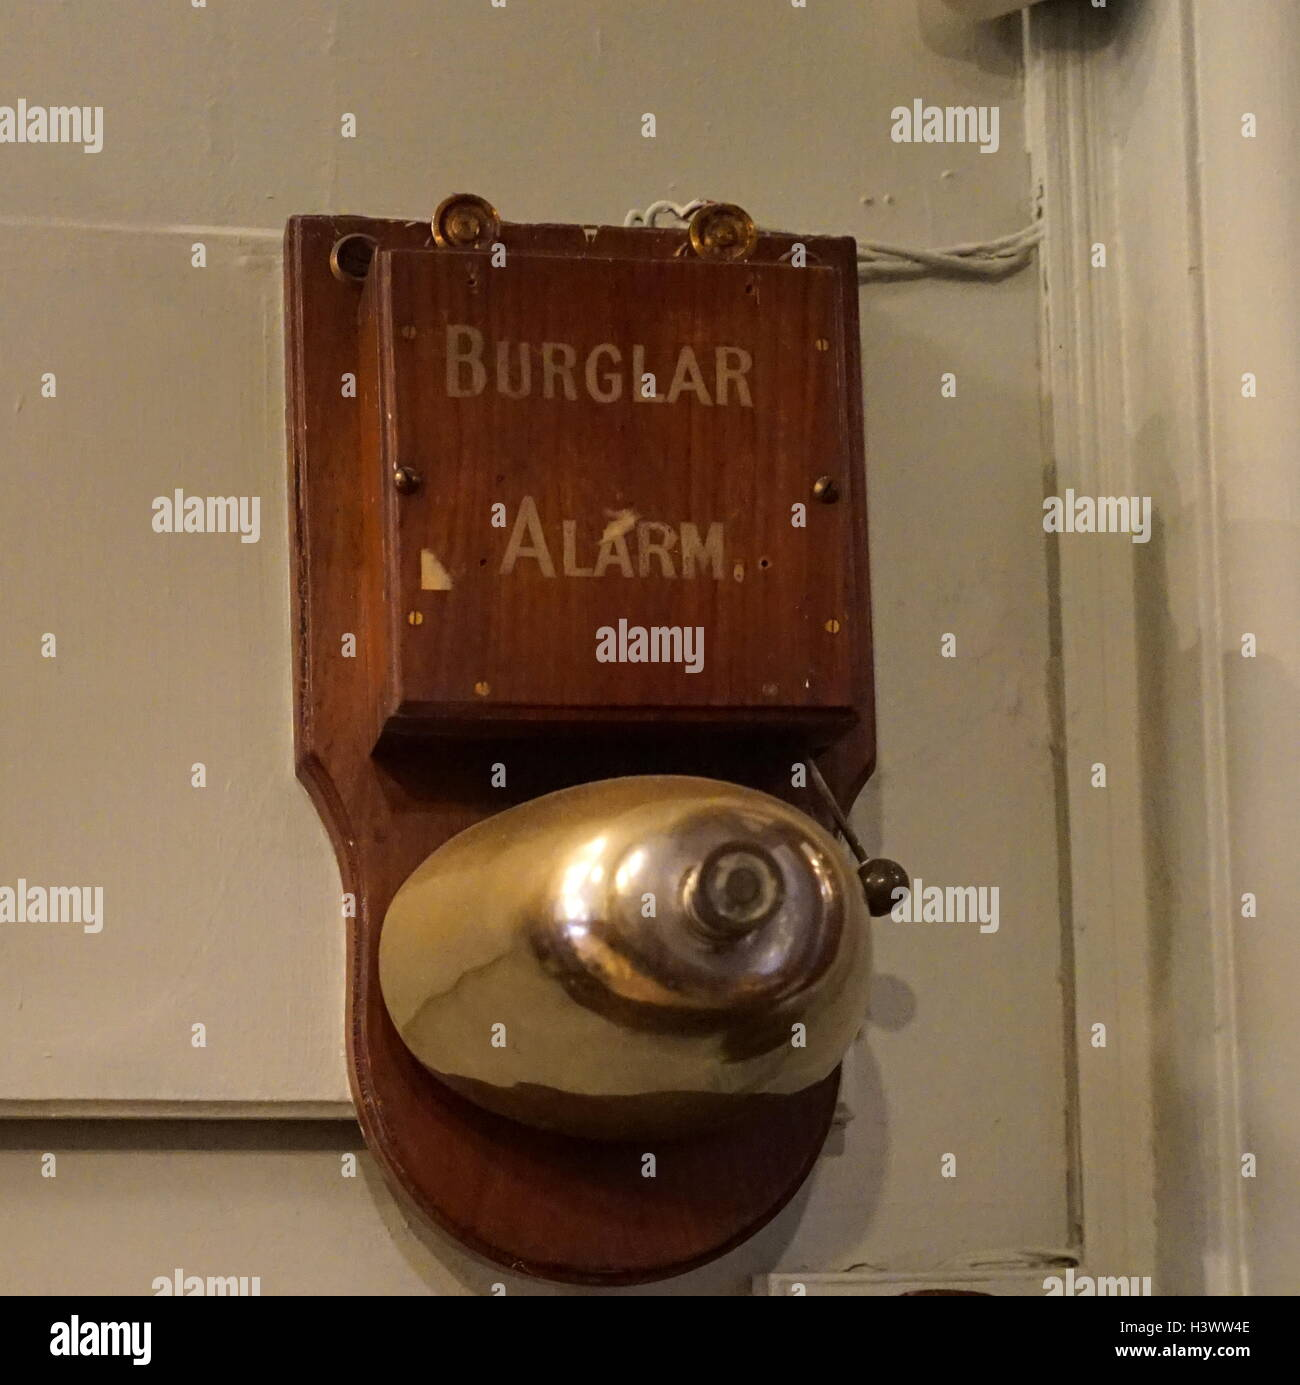 19th Century burglar alarm. Dated 21st Century - Stock Image